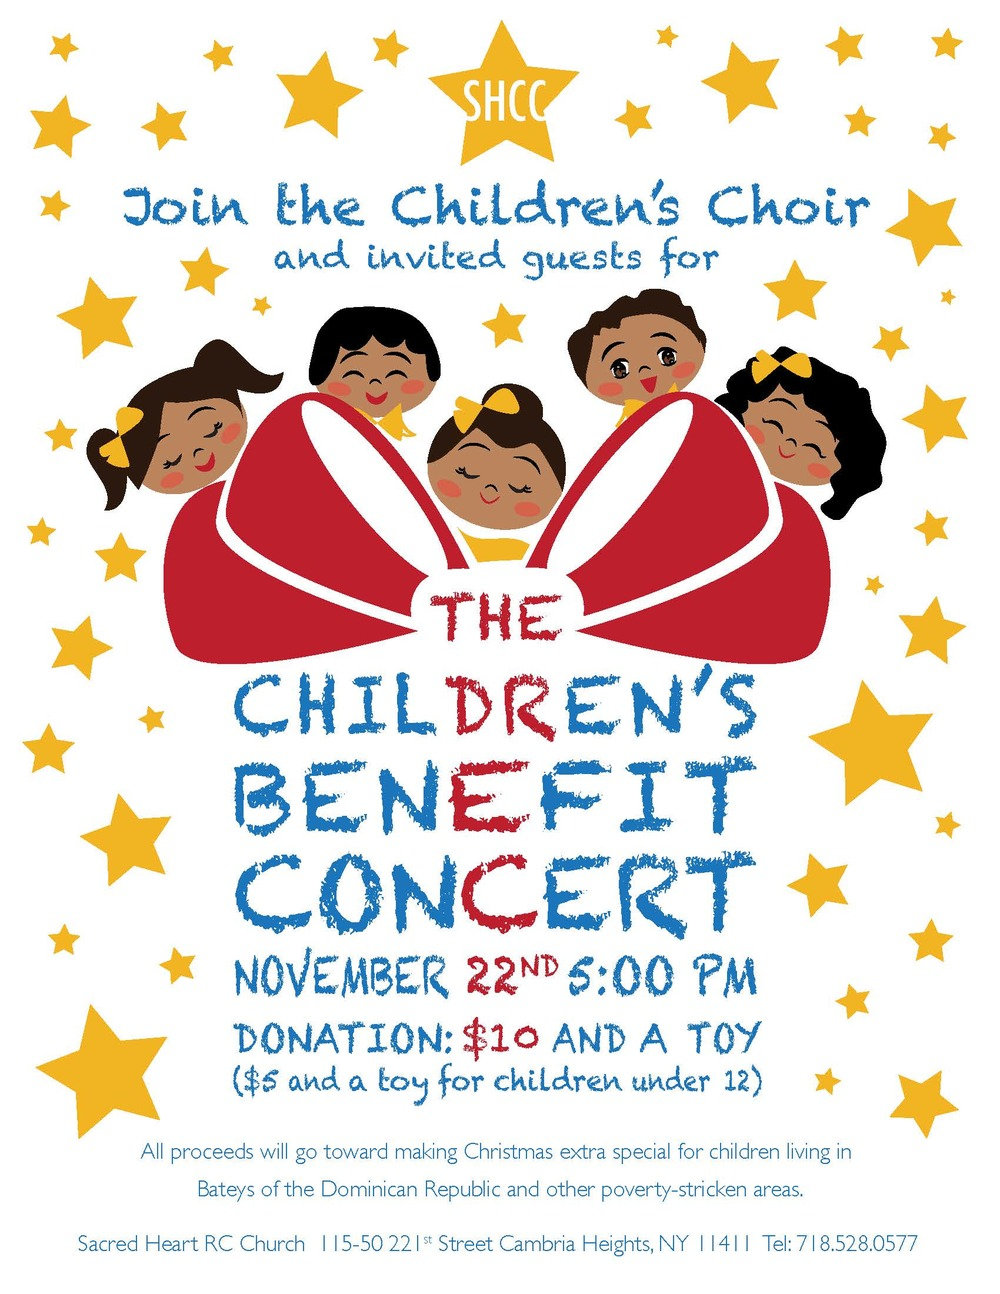 Children Choir Benefit Concert 2015.jpg